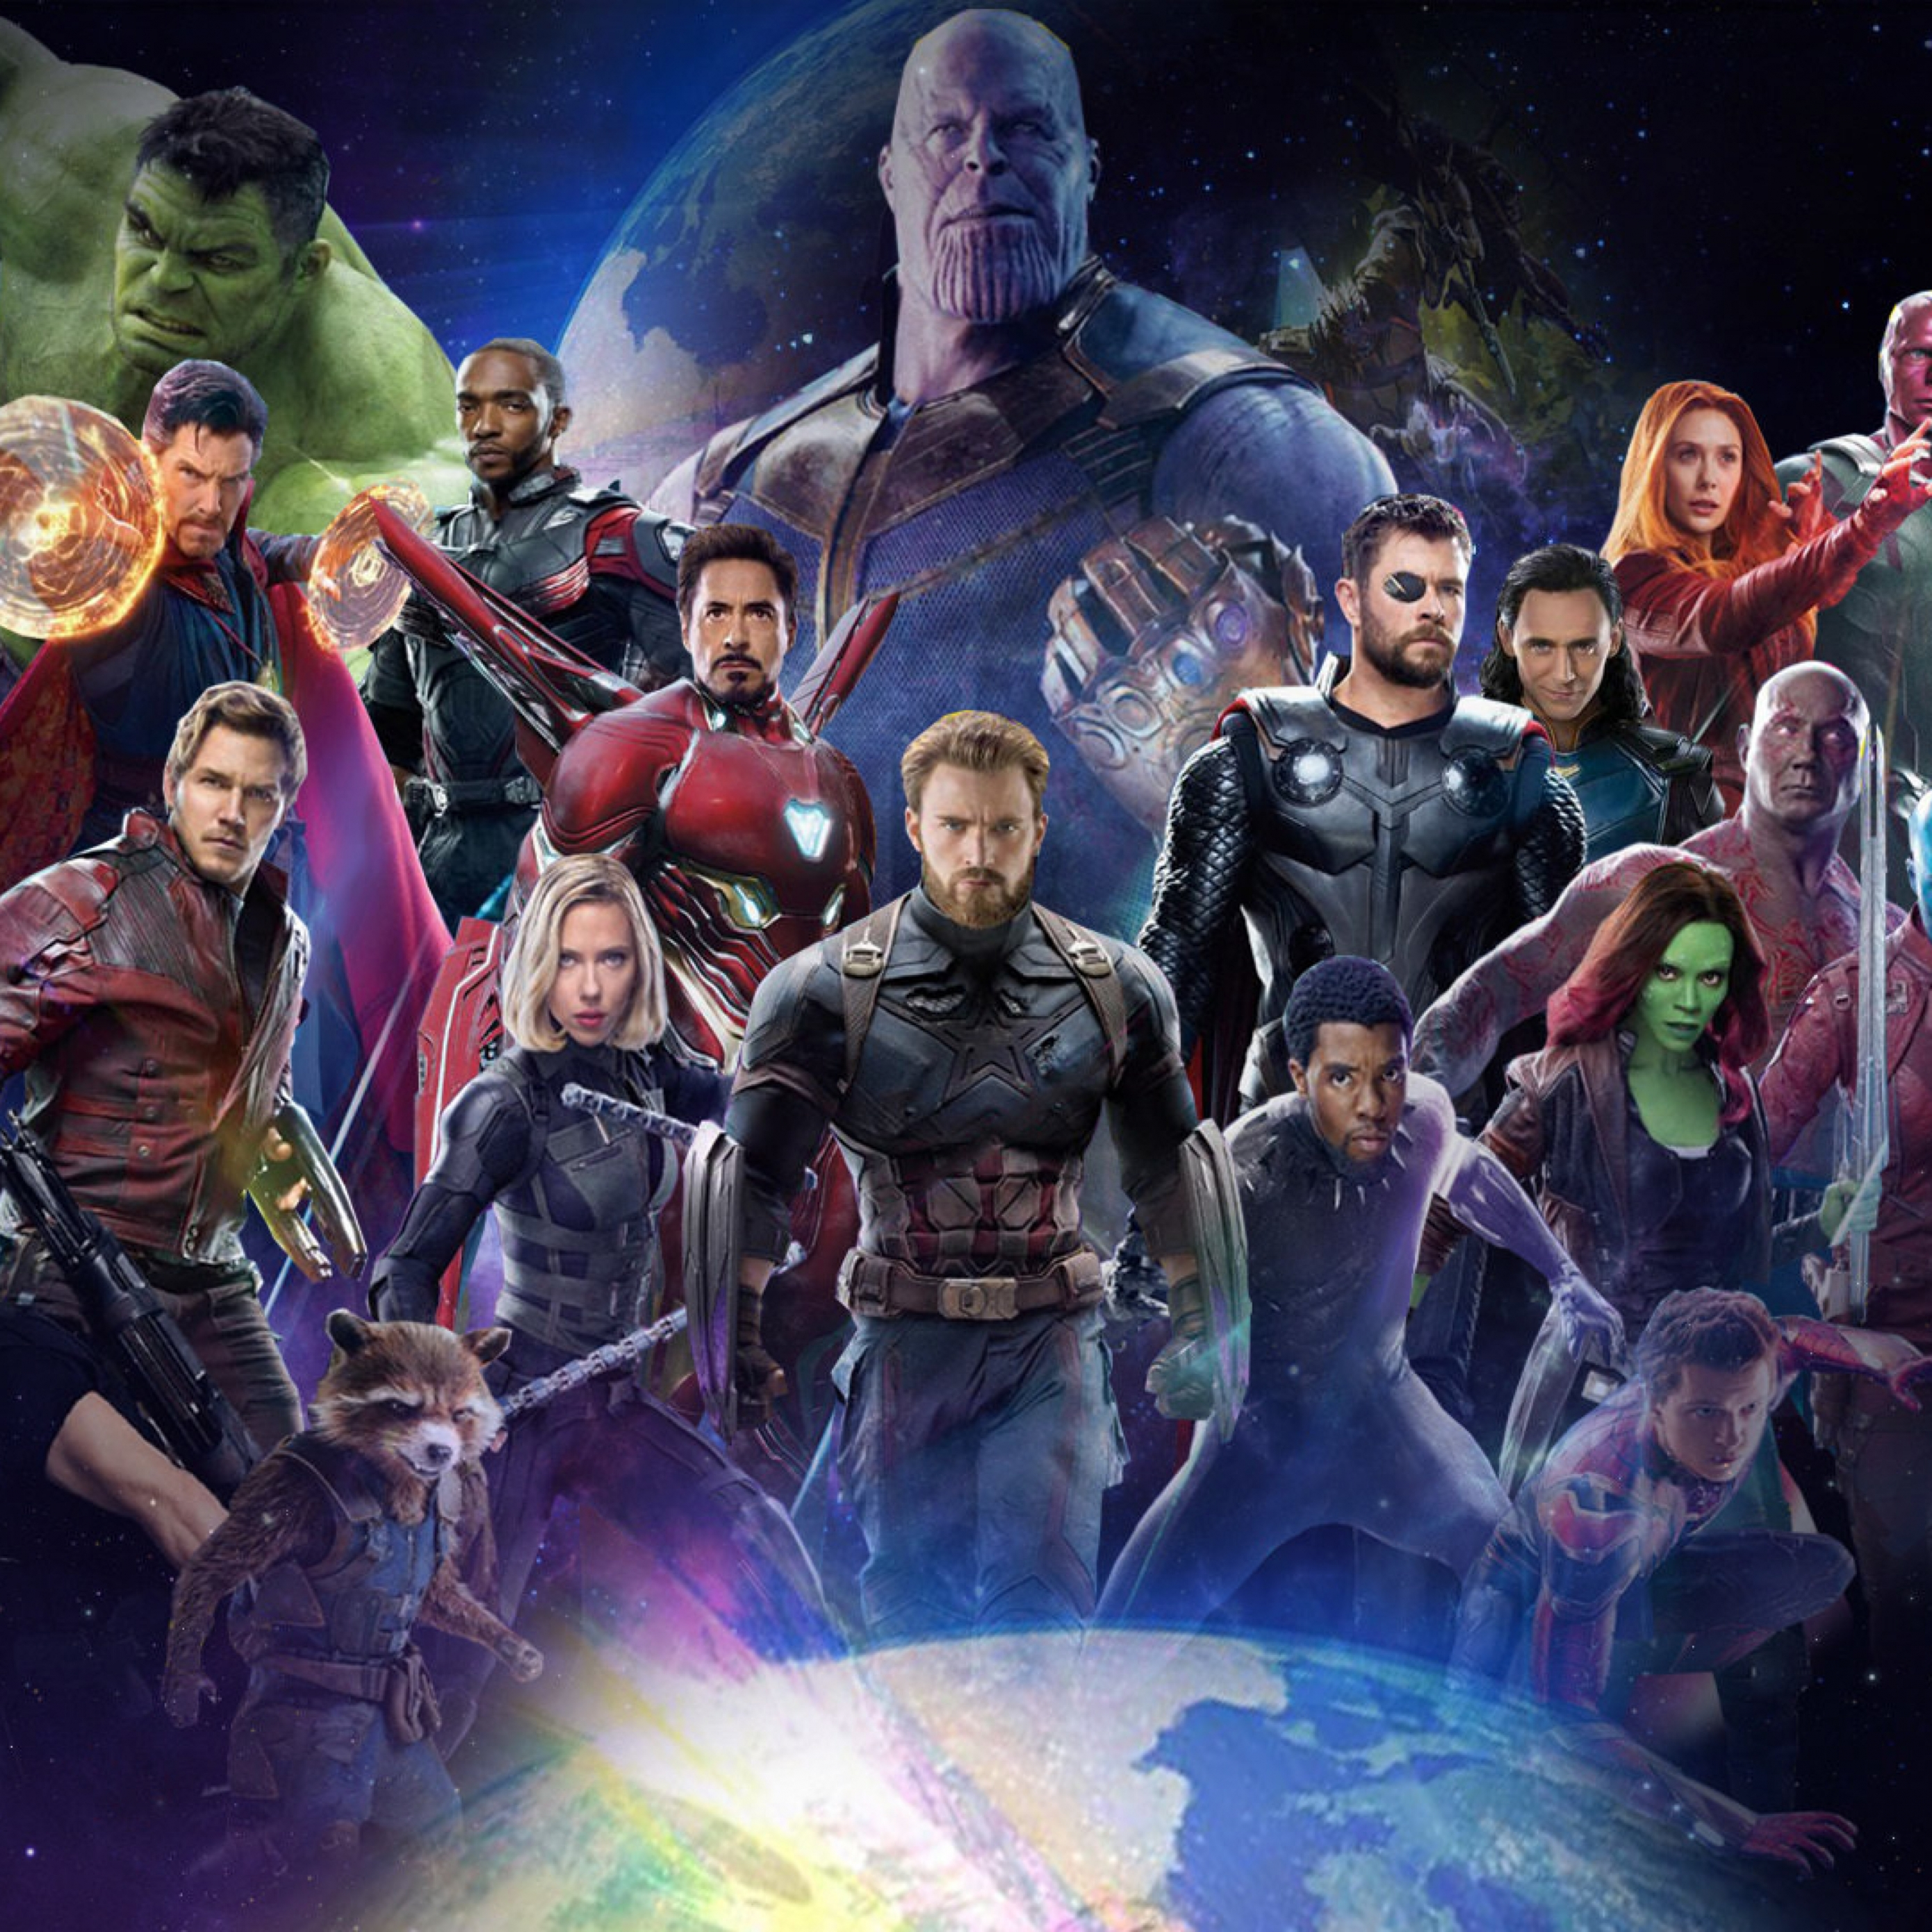 Download Avengers 4 All Superheroes Fan Made Poster Apple iPad Air 2780x2780